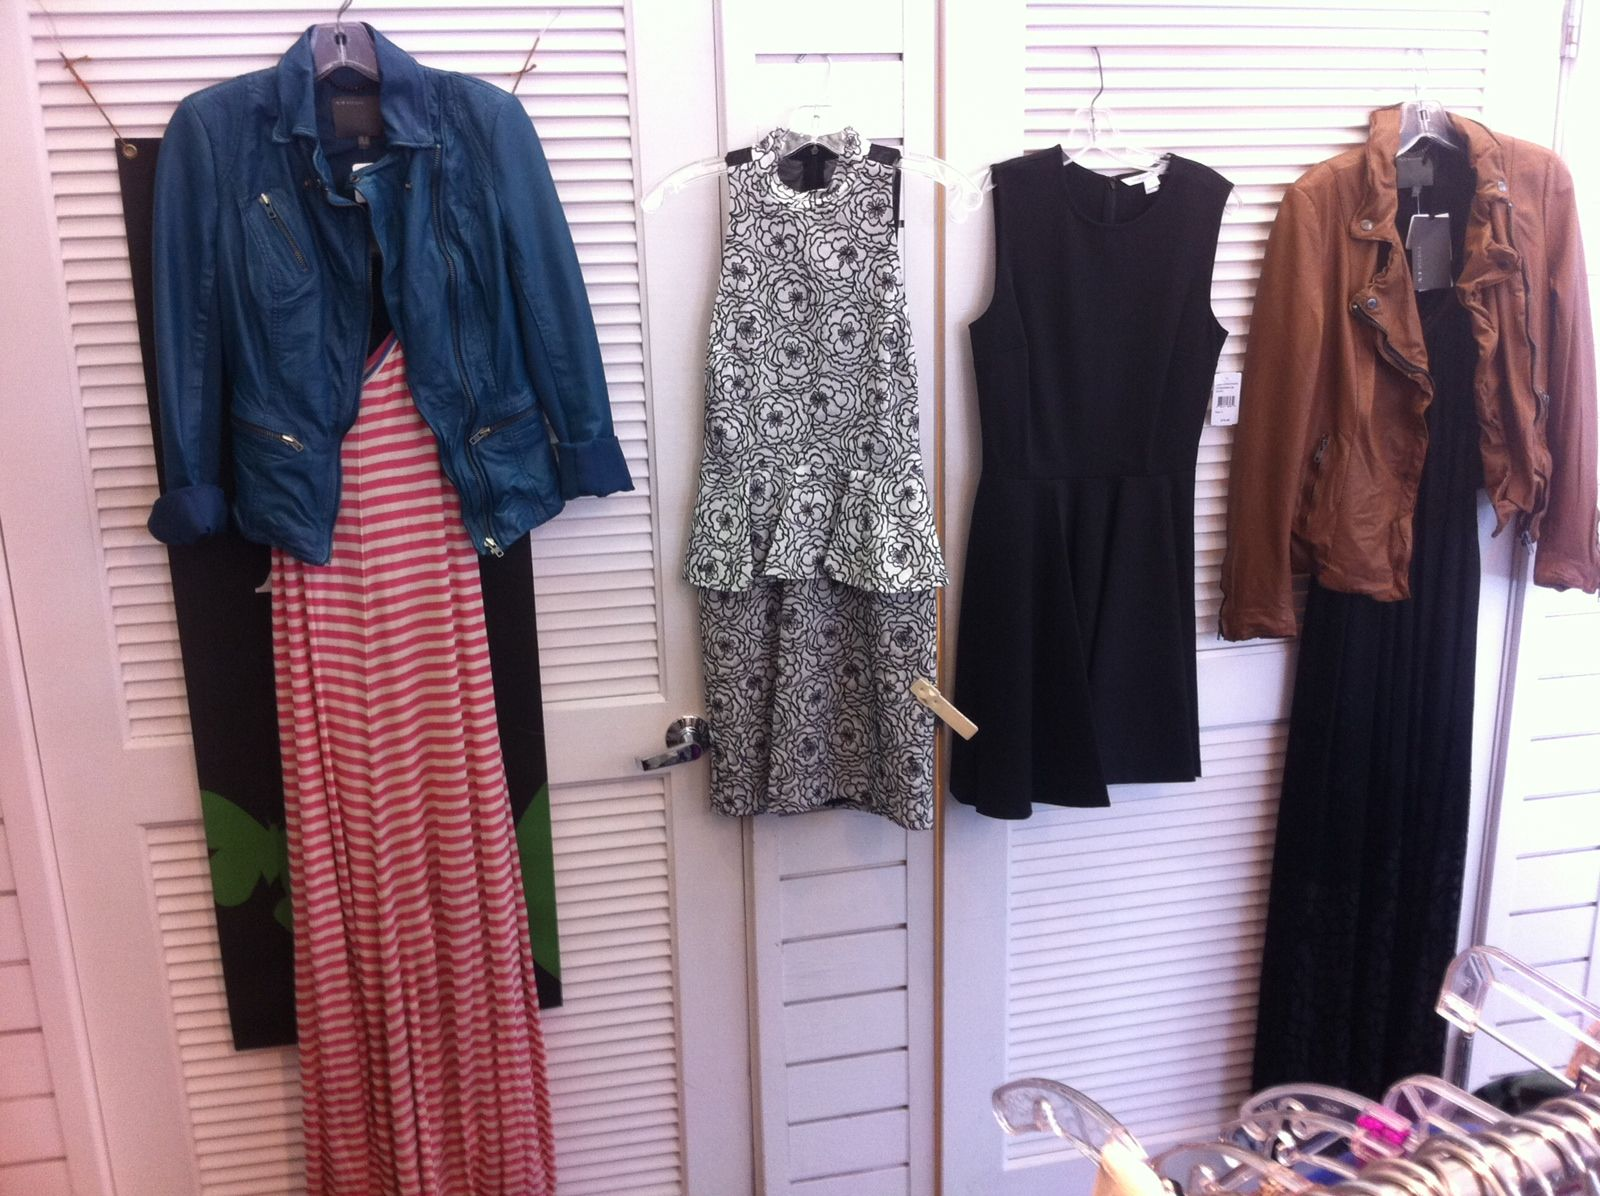 Long red/white/cobalt striped maxi with blue leather moto jacket; black bouncy skirt mini; black detailed lace maxi with brown leather jacket.